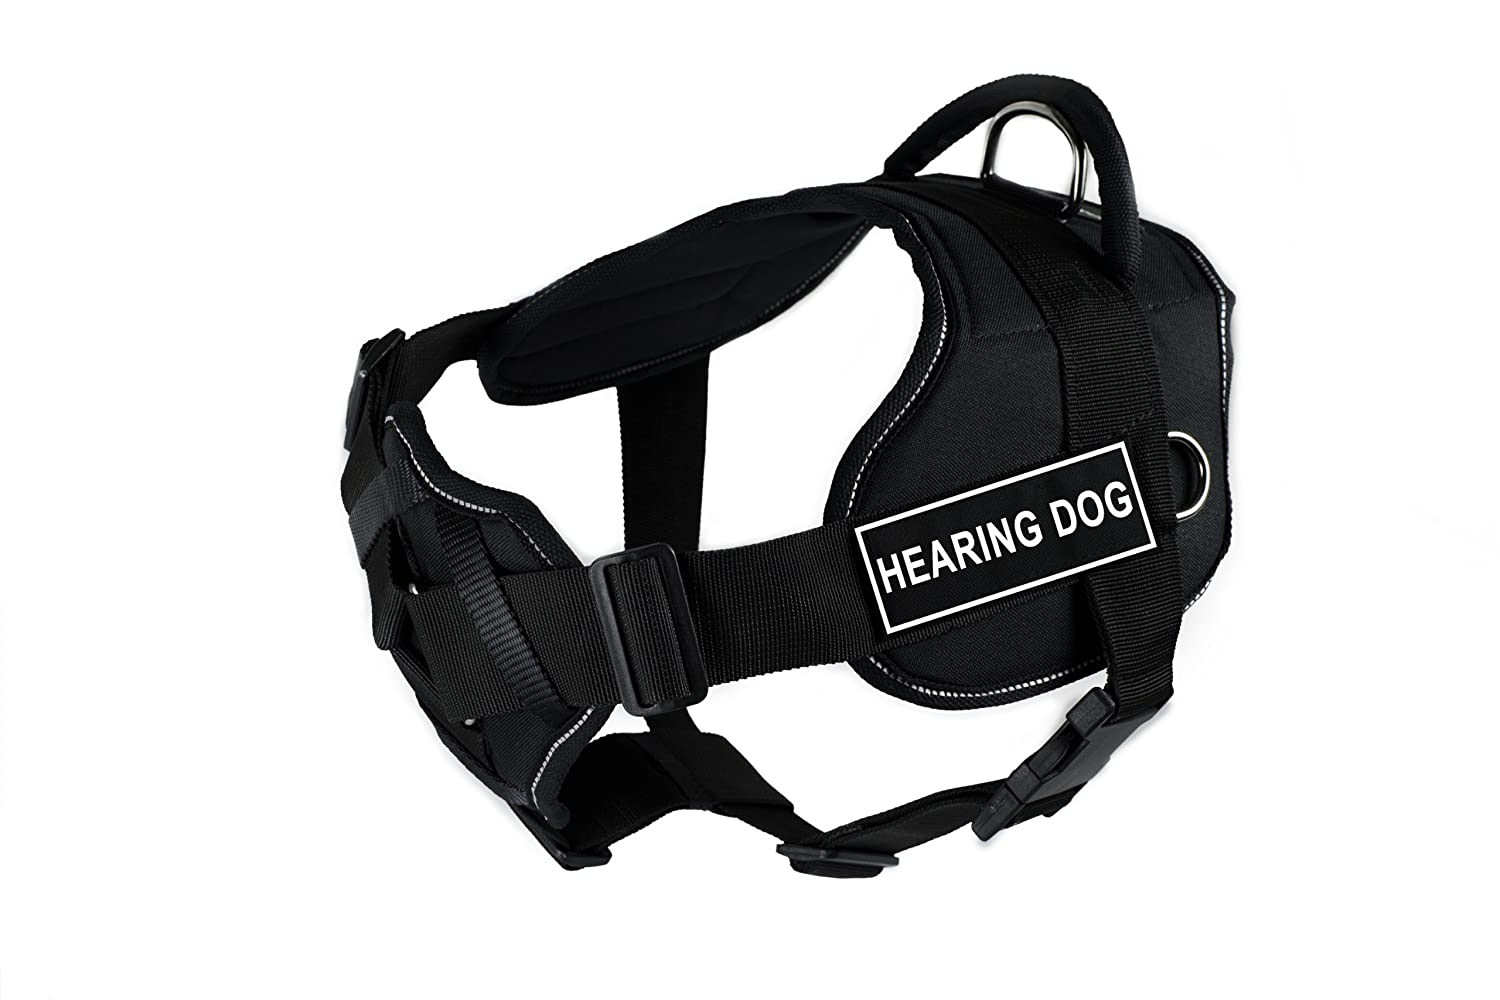 Dean & Tyler Fun Harness with Padded Chest Piece, Hearing Dog, Large, Black with Reflective Trim